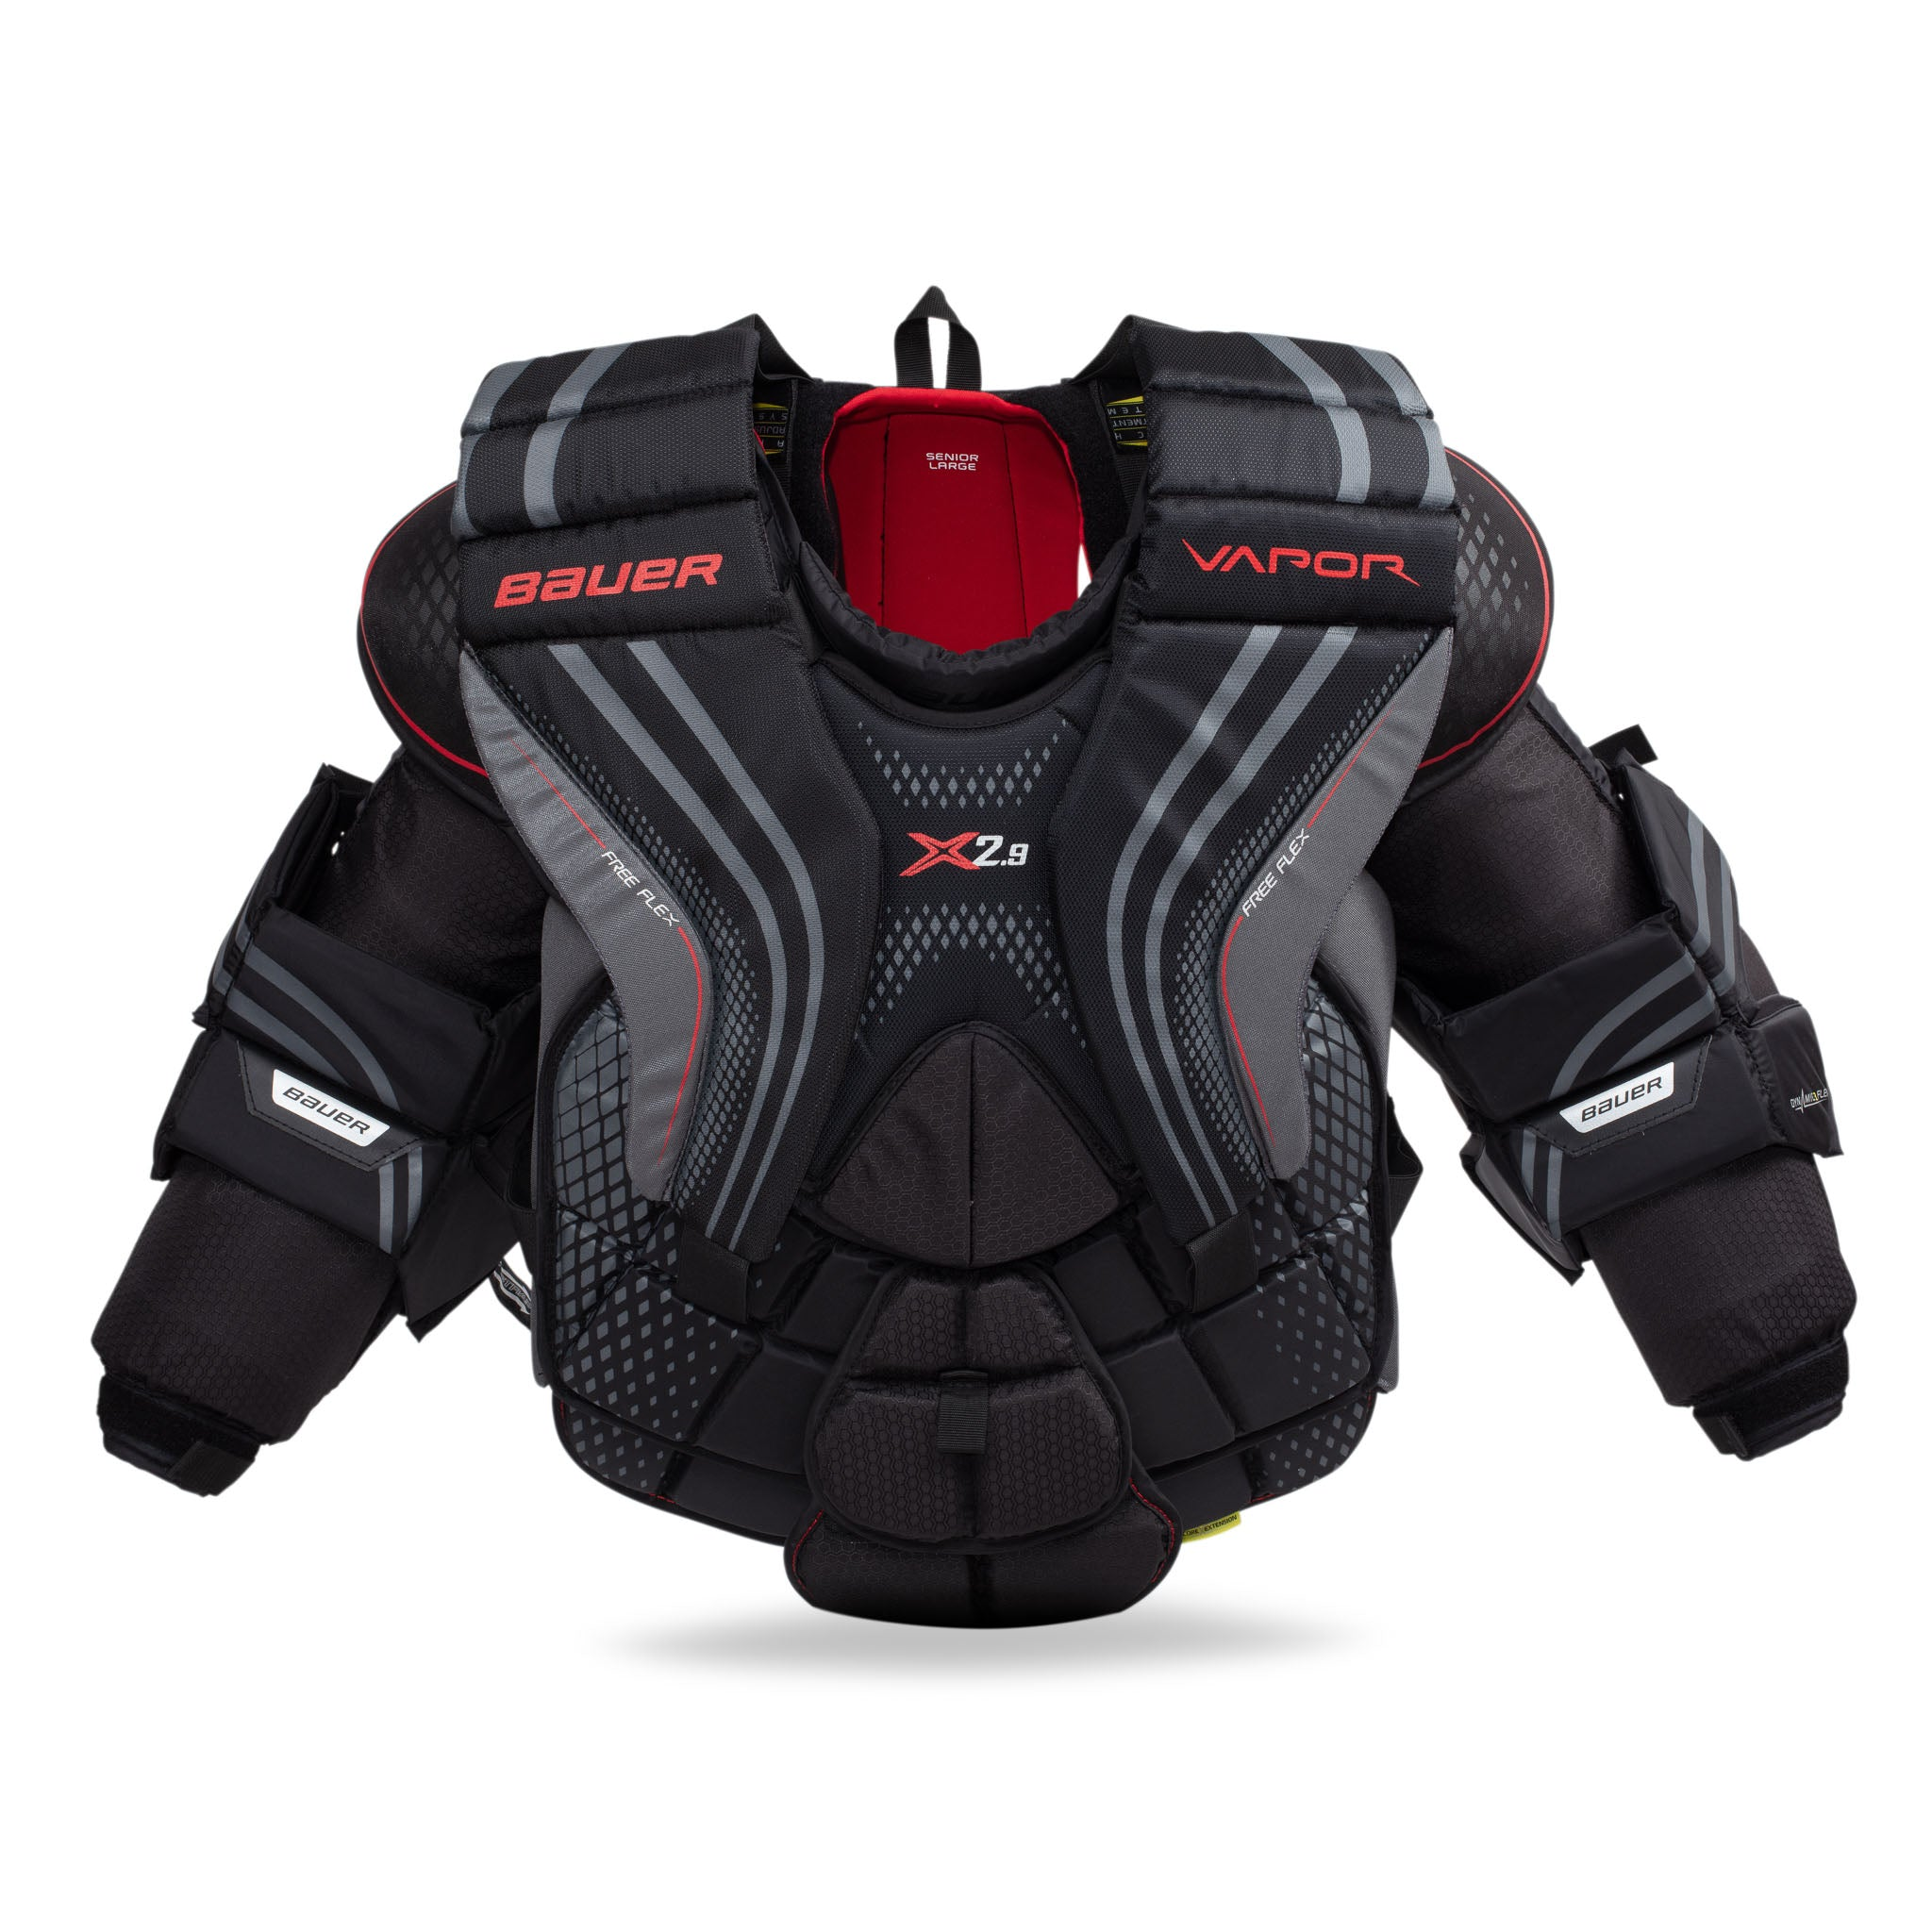 Bauer Vapor X2.9 Senior Chest & Arm Protector